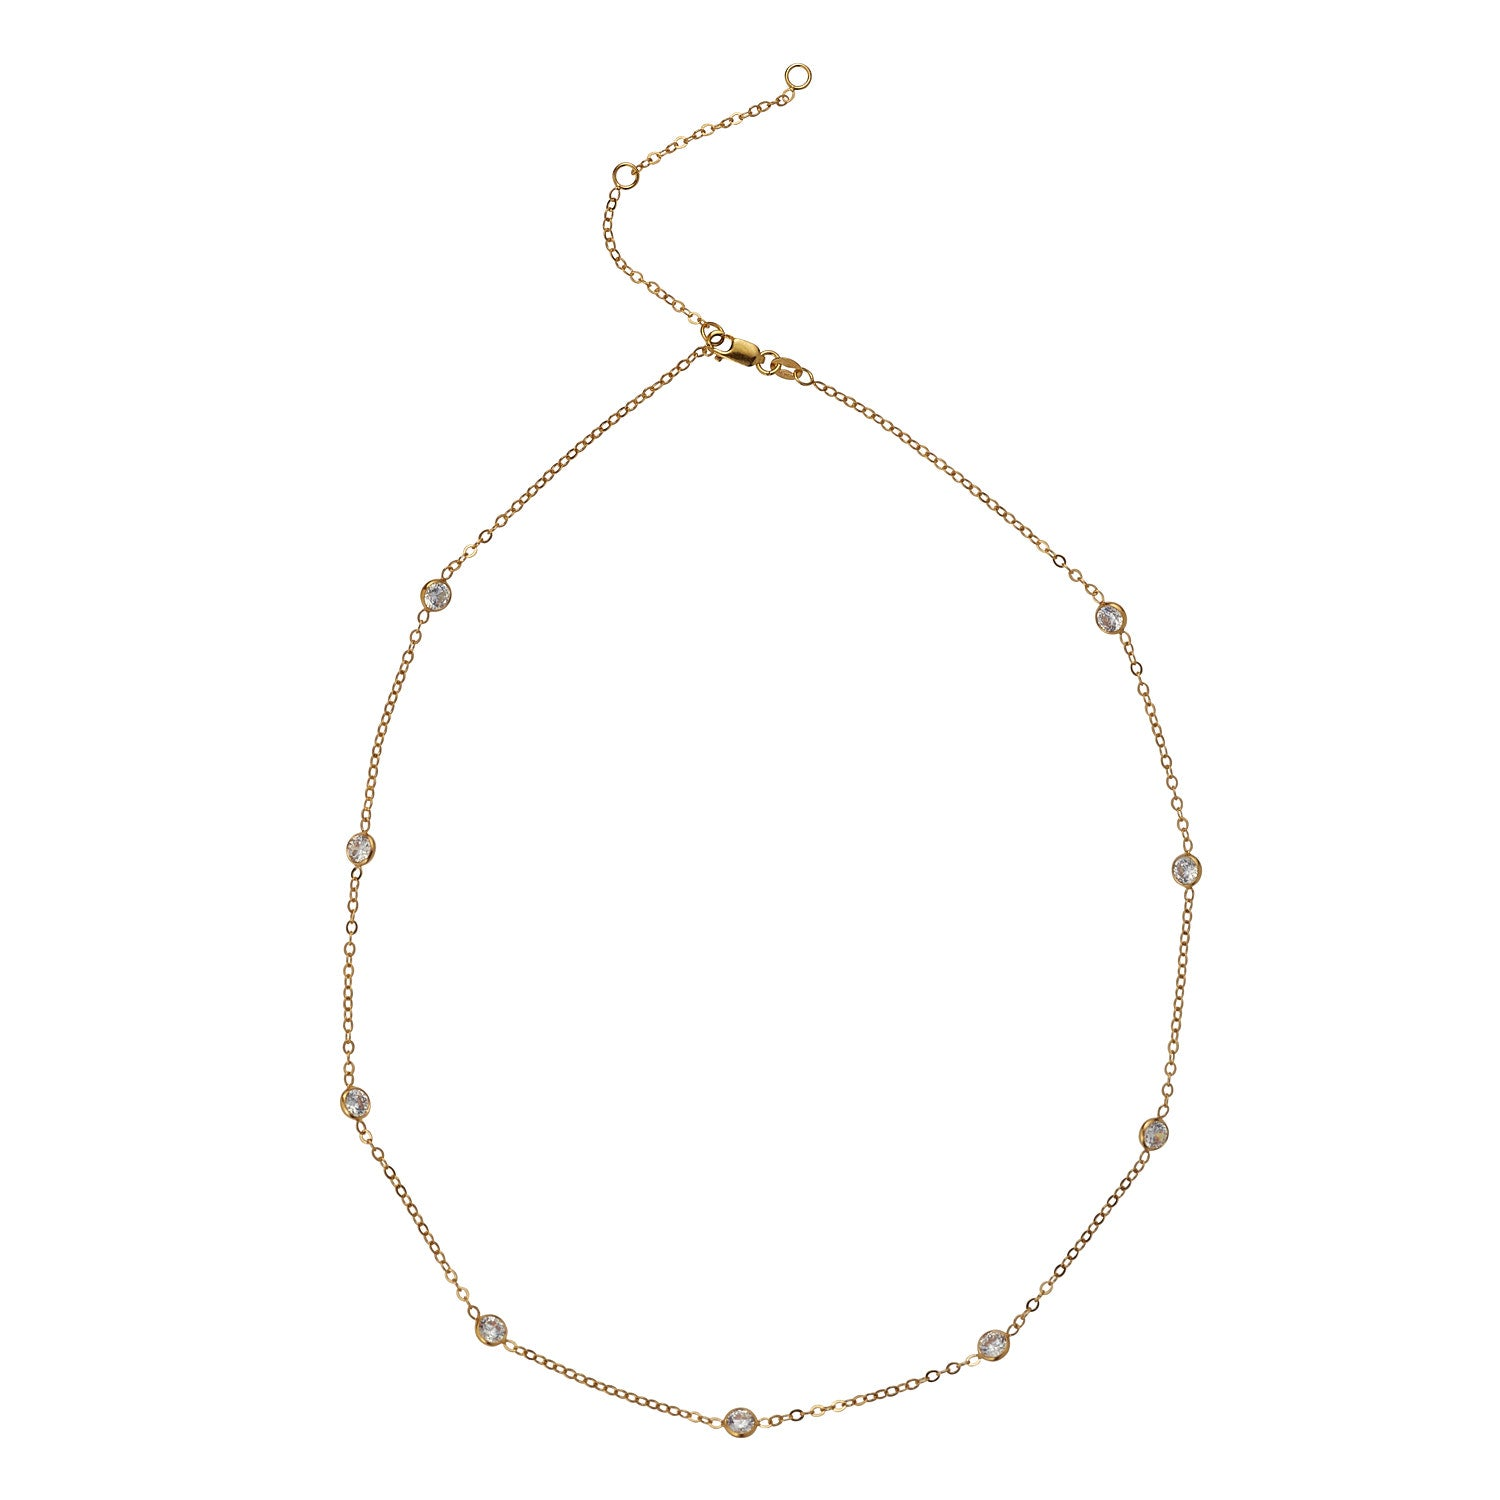 14kt Gold Filled CZ Satellite Necklace - MoMuse Jewellery